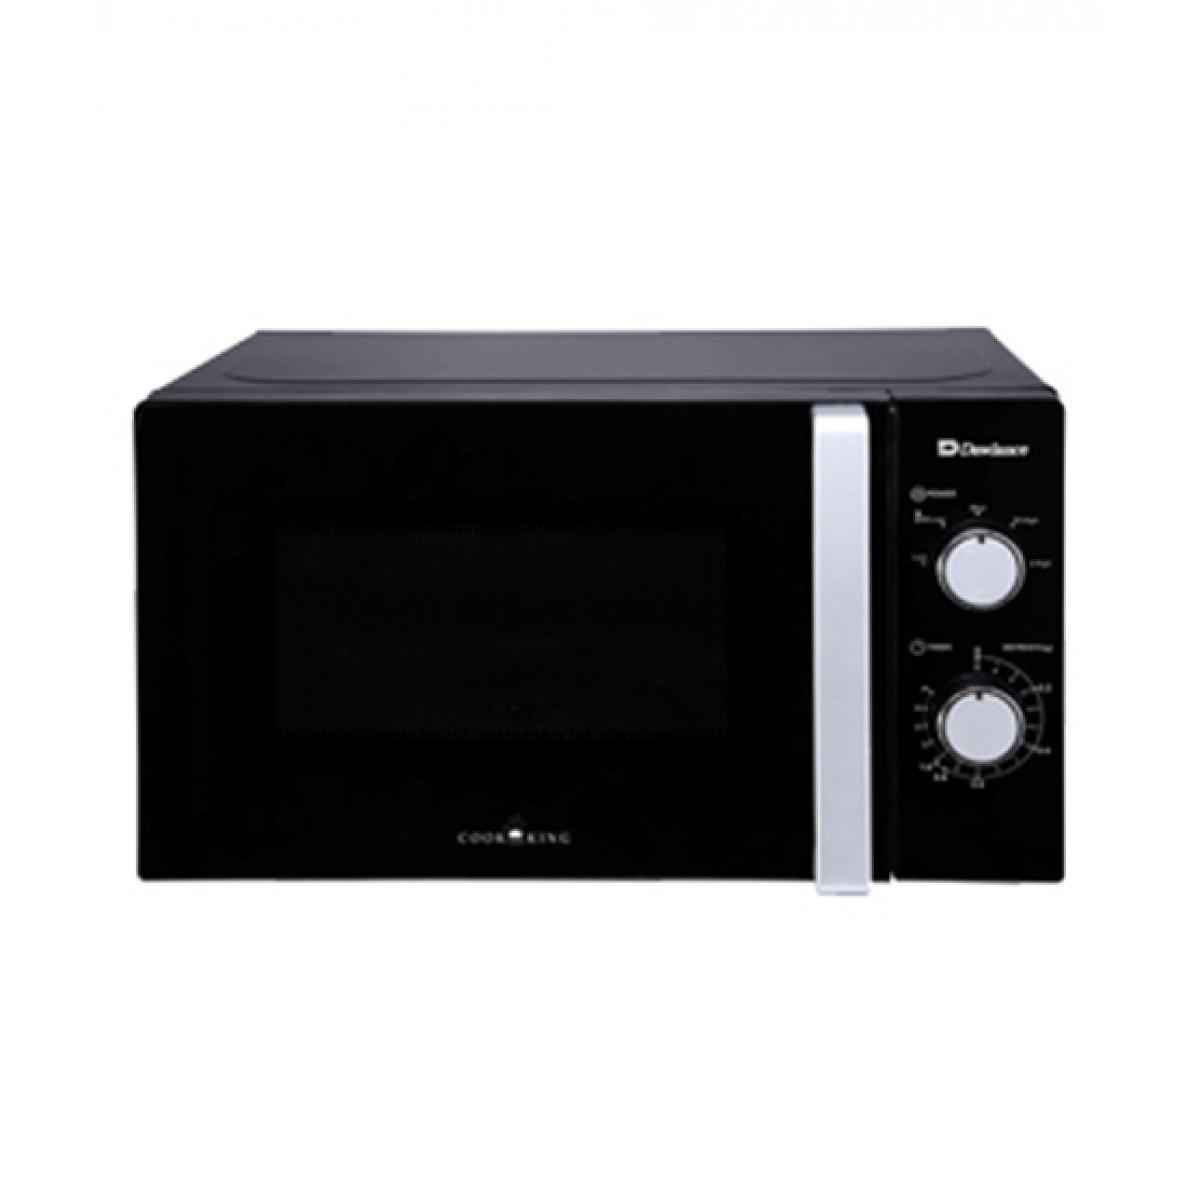 Dawlance Cooking Series Microwave Oven Md10 20 Ltr Black